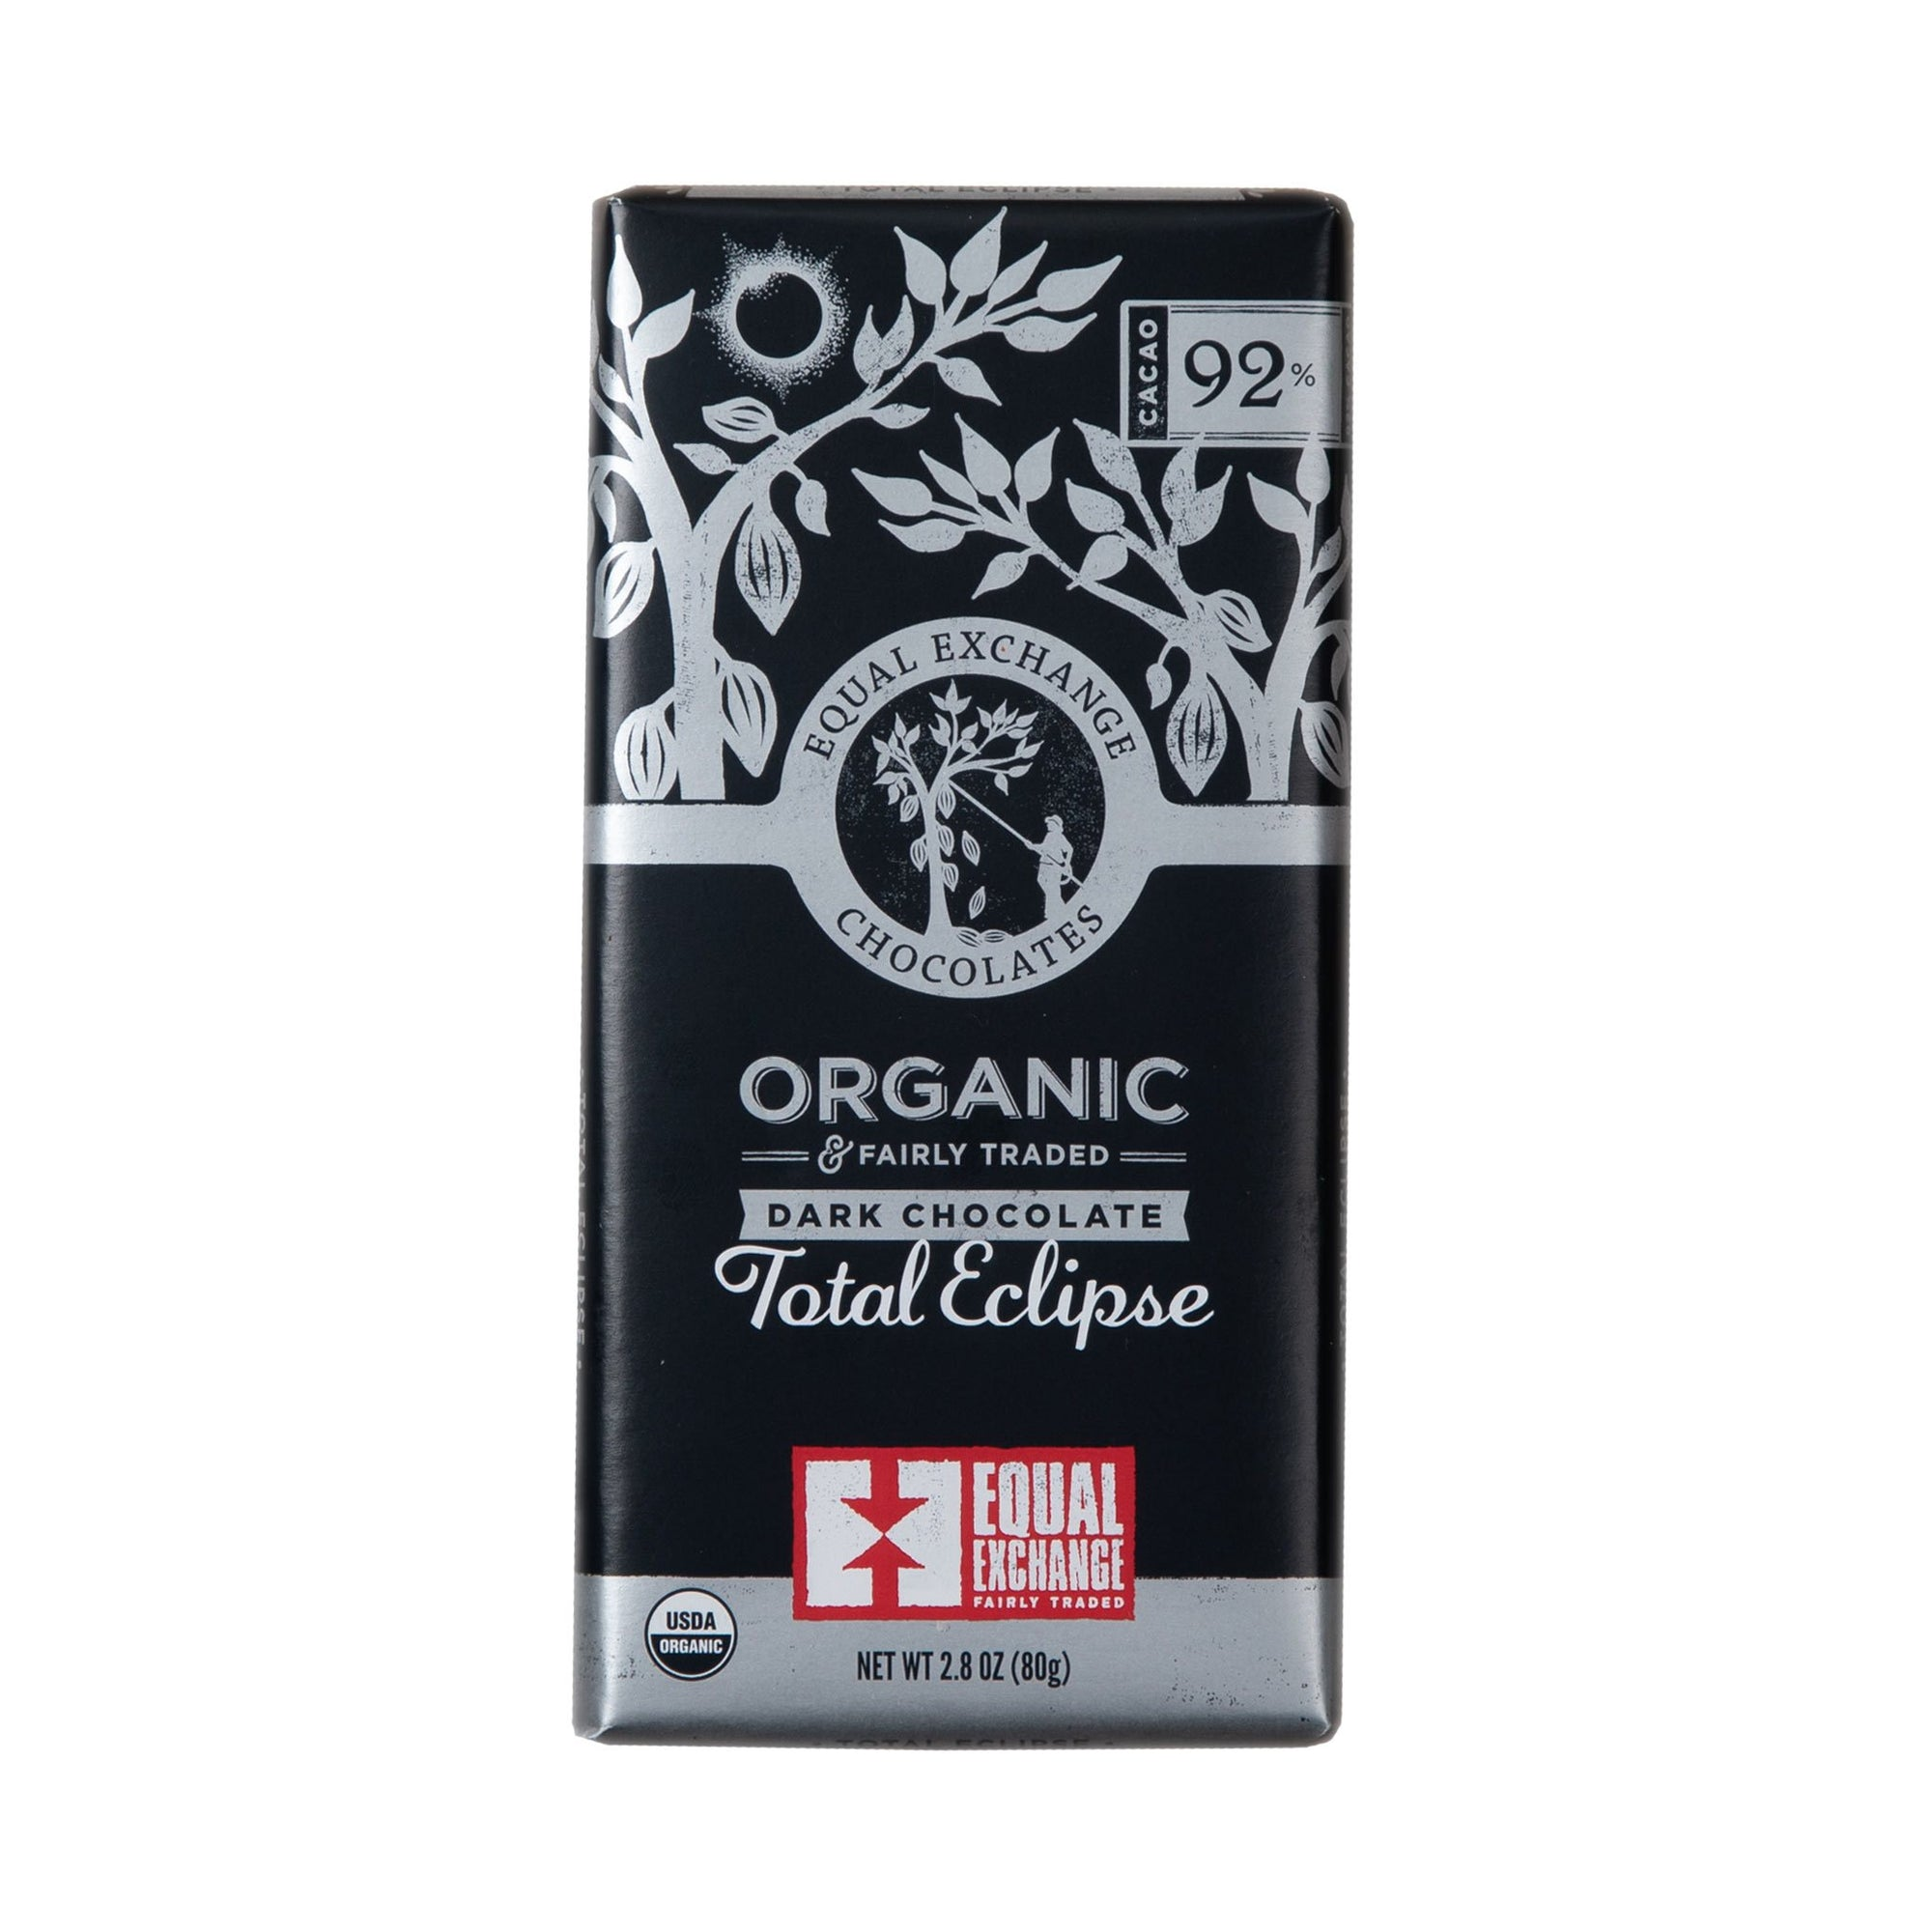 Total Eclipse Organic Extra Dark Chocolate - Equal Exchange - 2.8 oz